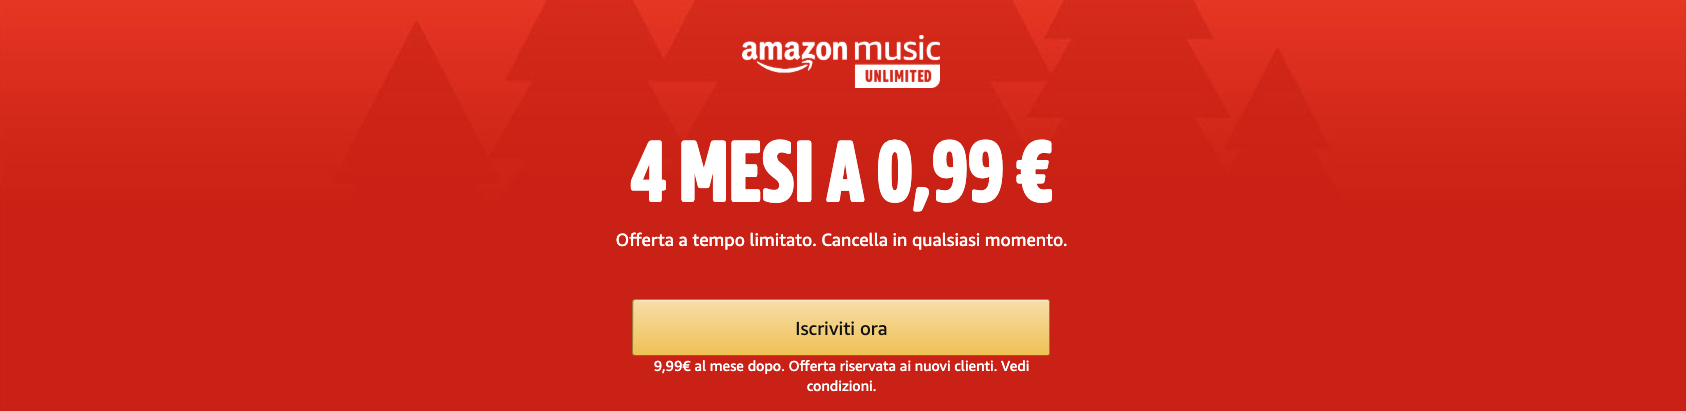 amazon unlimited offerta vaporwave italia